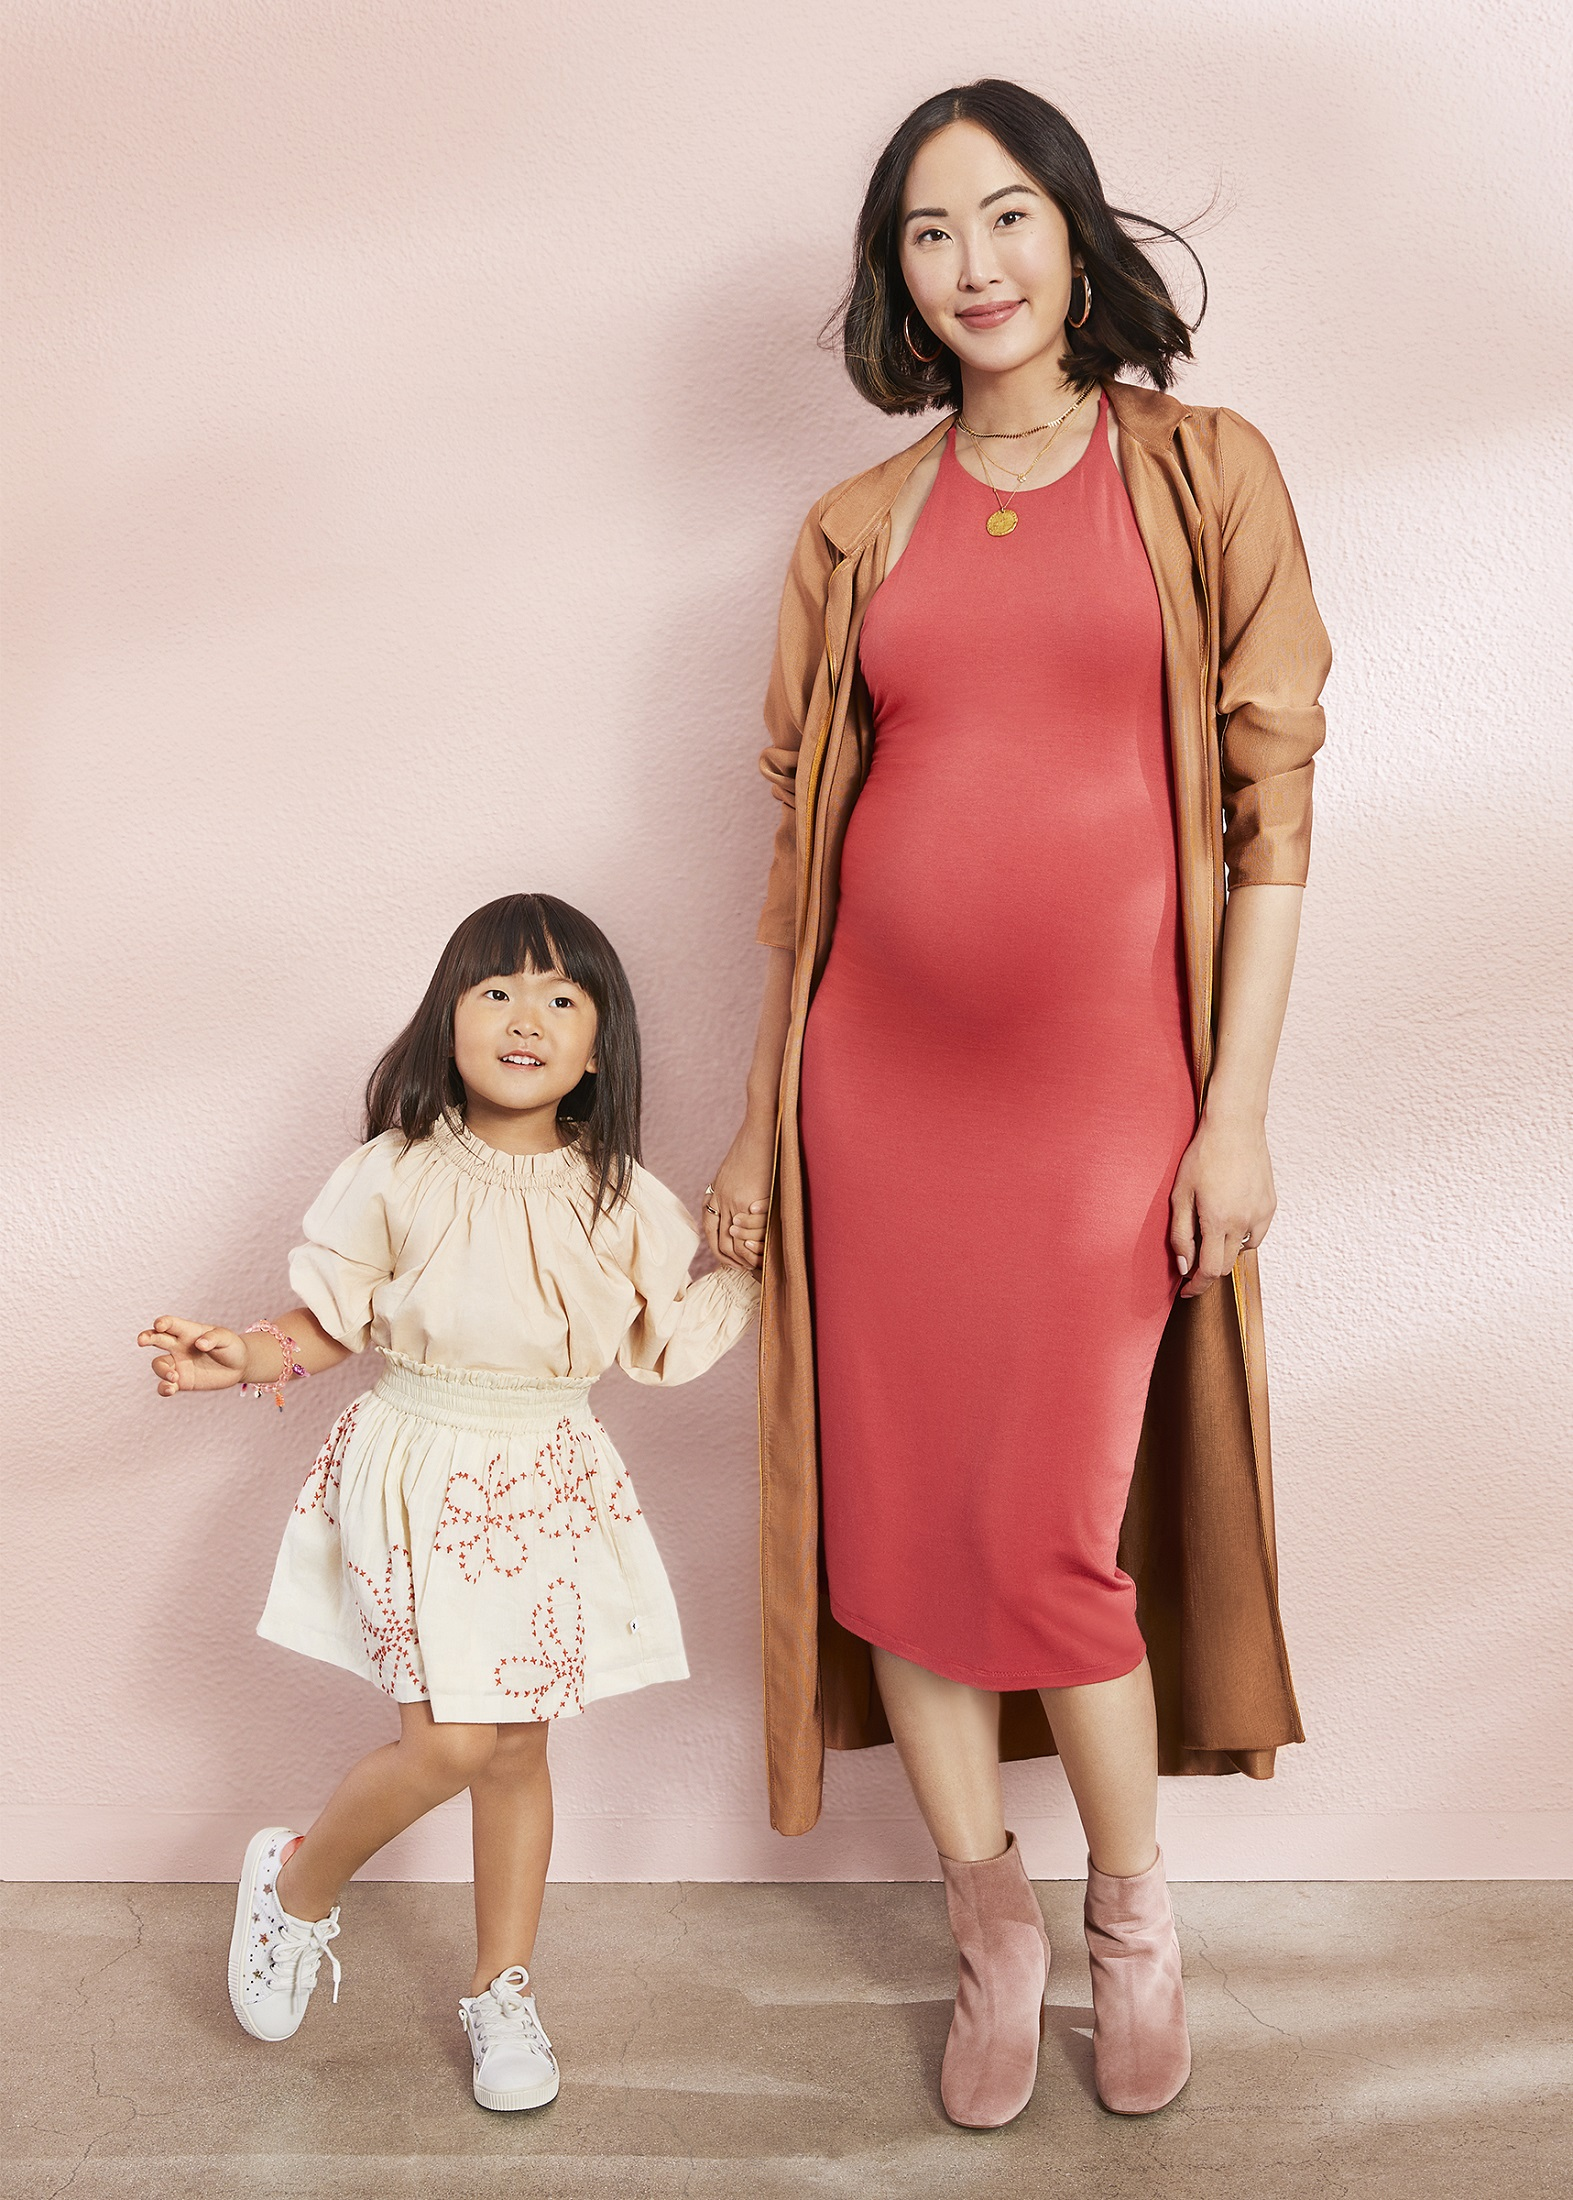 Chriselle Lim Long Coral Bodycon Dress and Daughter